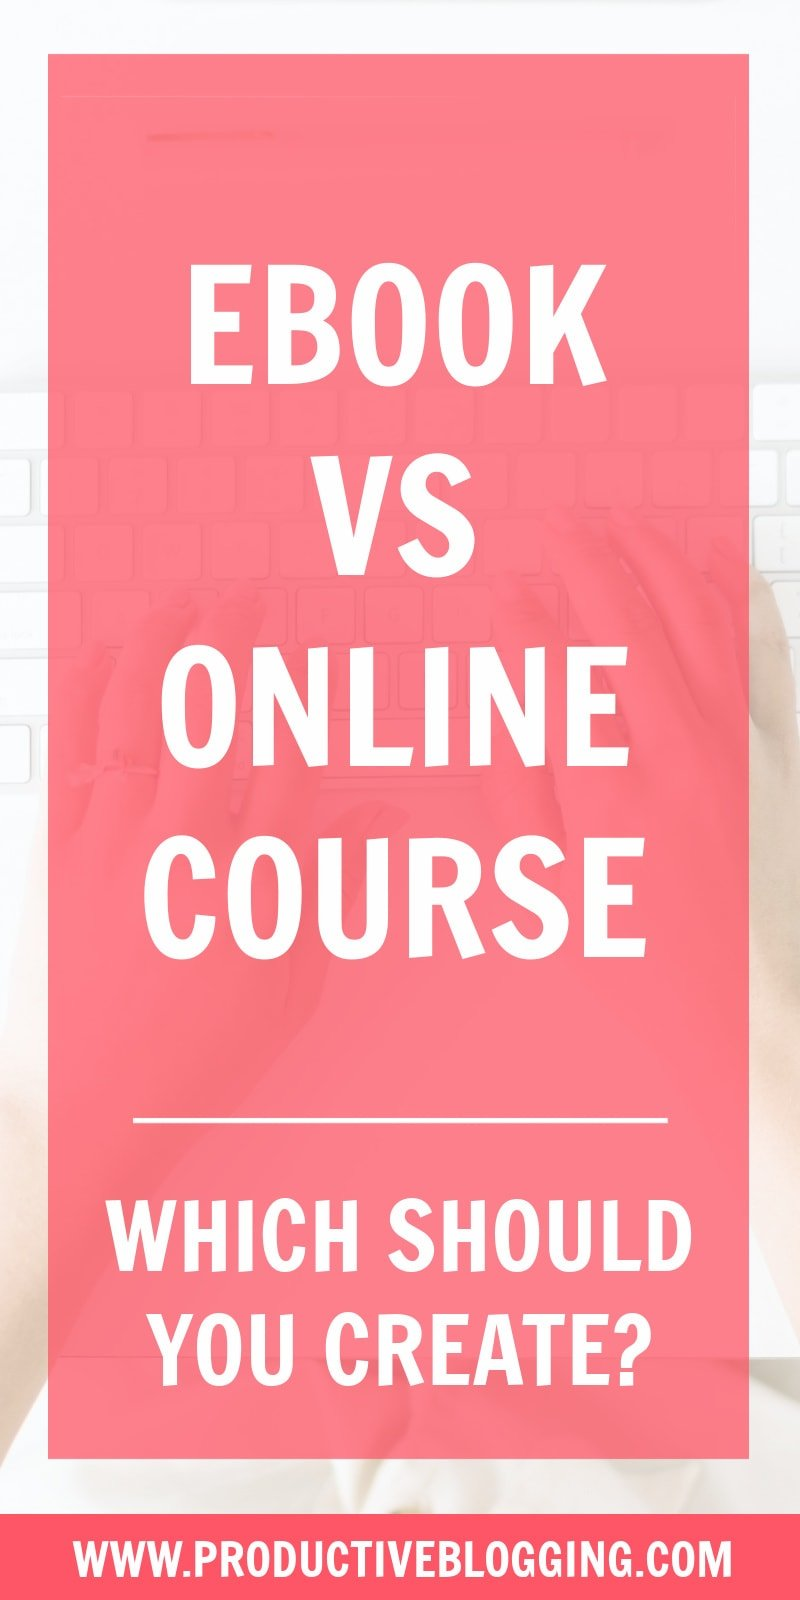 Ebooks and online courses are two of the most popular digital products out there. But which should you create? Which one is easiest to make? And which one will be most profitable? #ebook #ebookcreation #onlinecoursecreation #onlinecourse #digitalproduct #makemoneyblogging #monetizeyourblog #passiveincome #earnpassiveincome #passiveincomeblogging #blogginglife #bloglife #professionalblogger #bloggingismyjob #solopreneur #mompreneur #fempreneur #bloggingbiz #bloggingtips  #productiveblogging